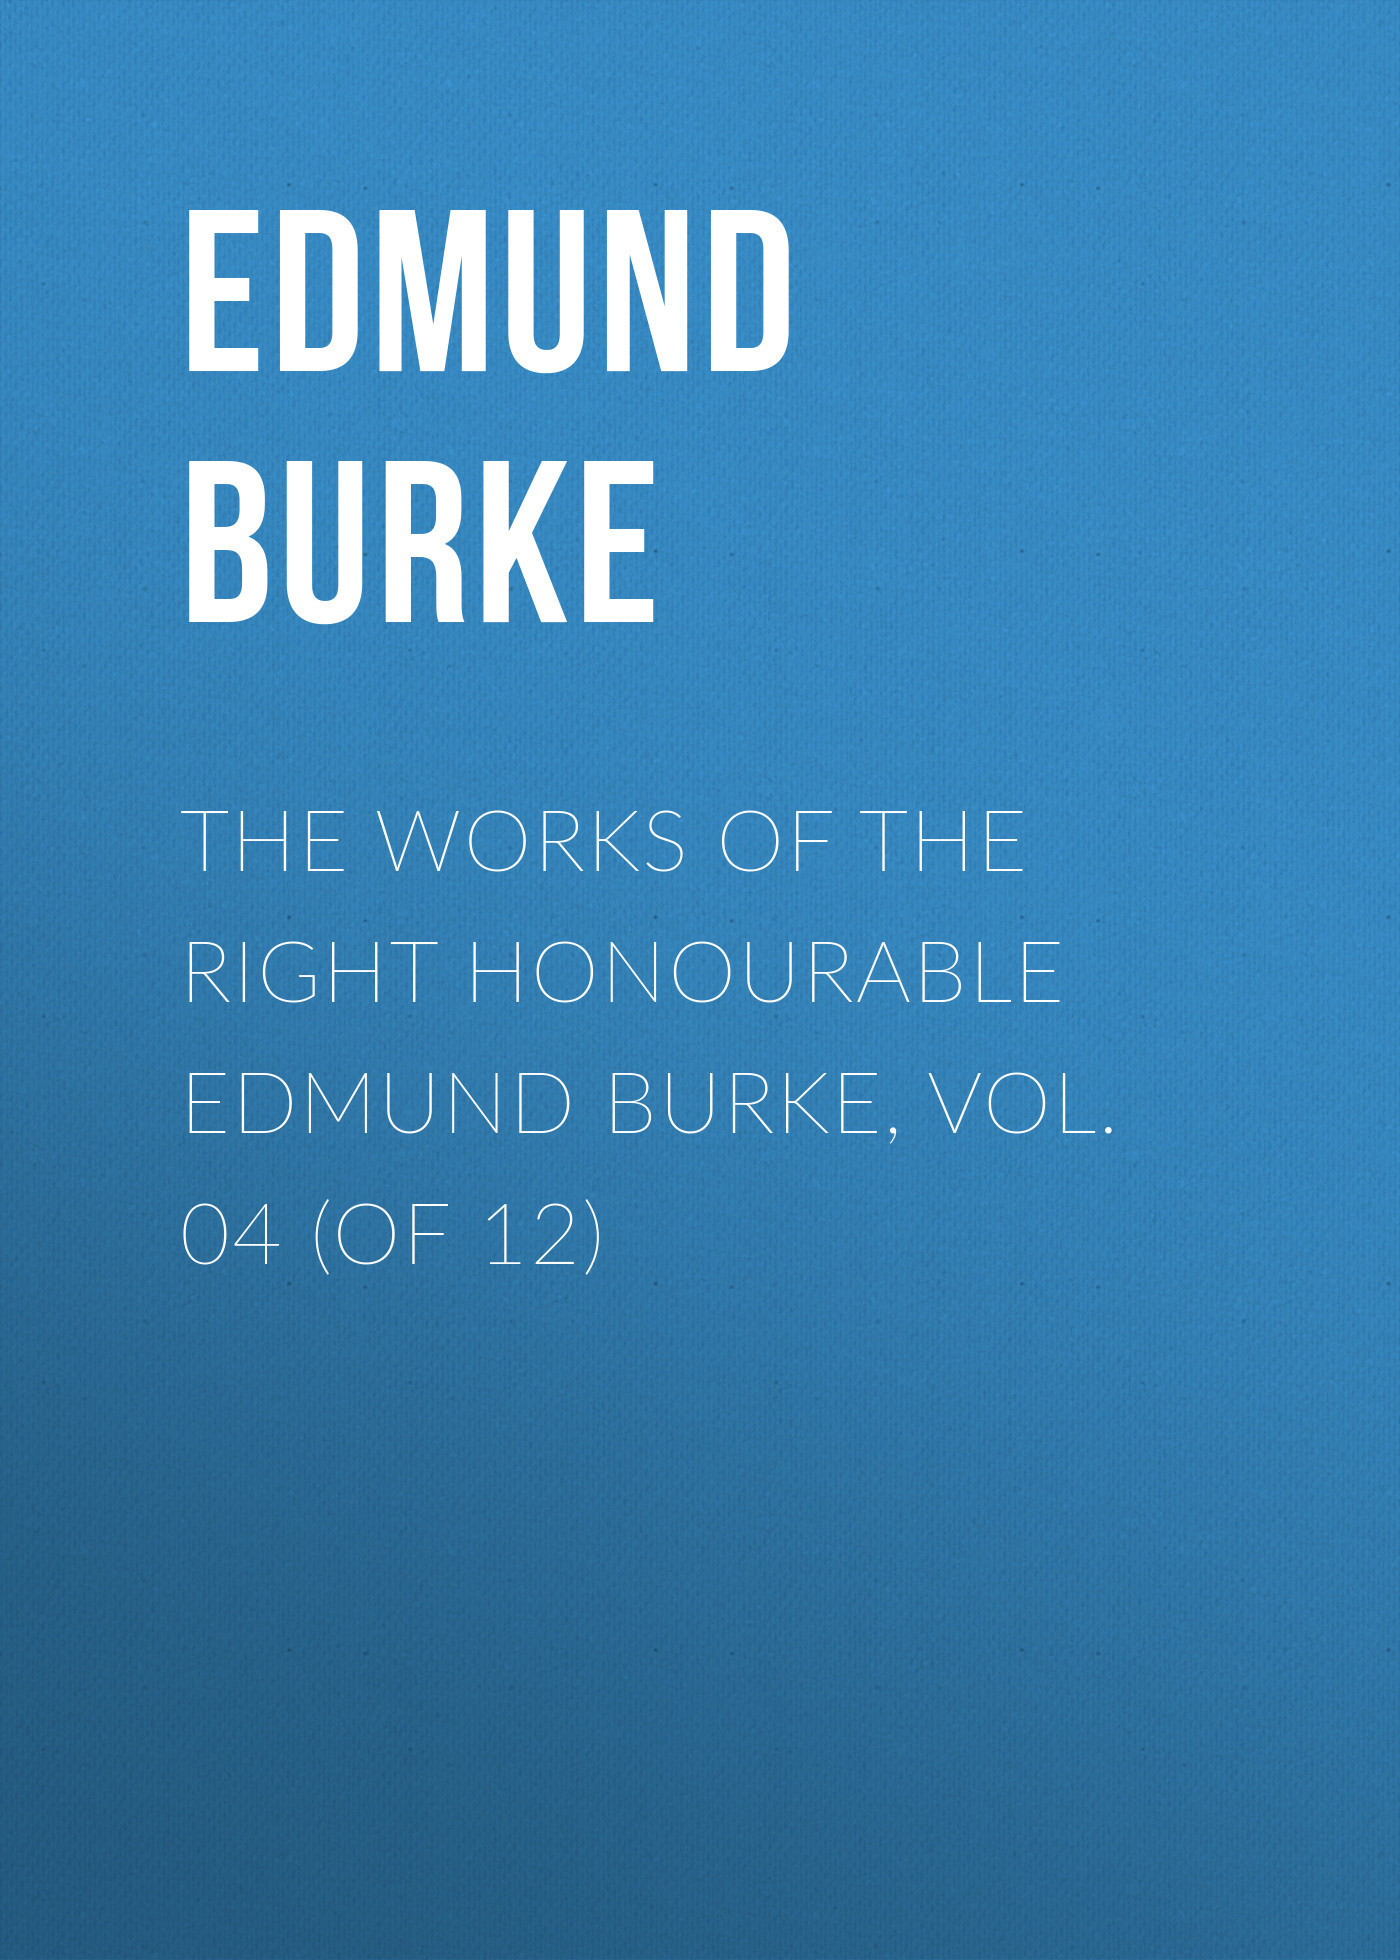 Edmund Burke The Works of the Right Honourable Edmund Burke, Vol. 04 (of 12) edmund burke the works of the right honourable edmund burke vol 09 of 12